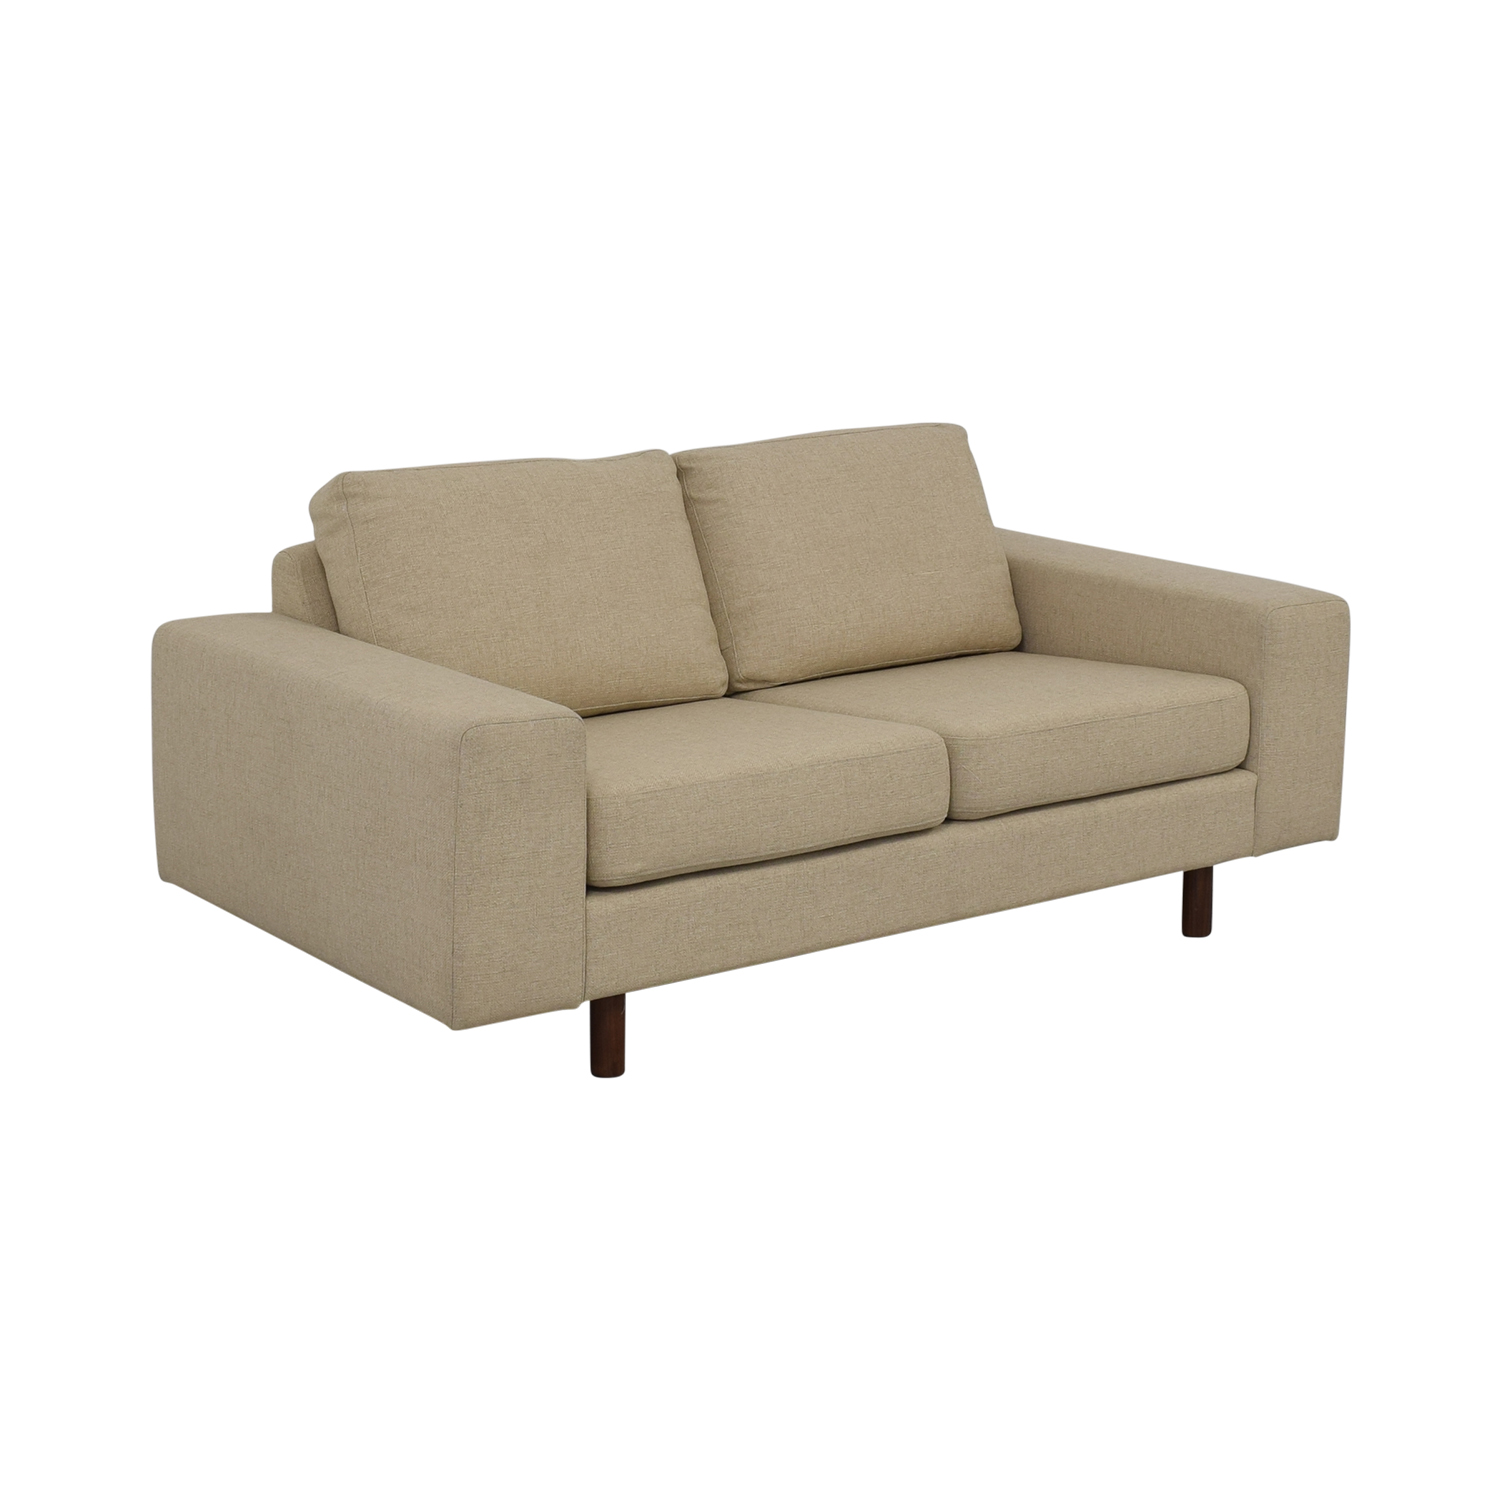 France and Son France and Son Platform Loveseat nj